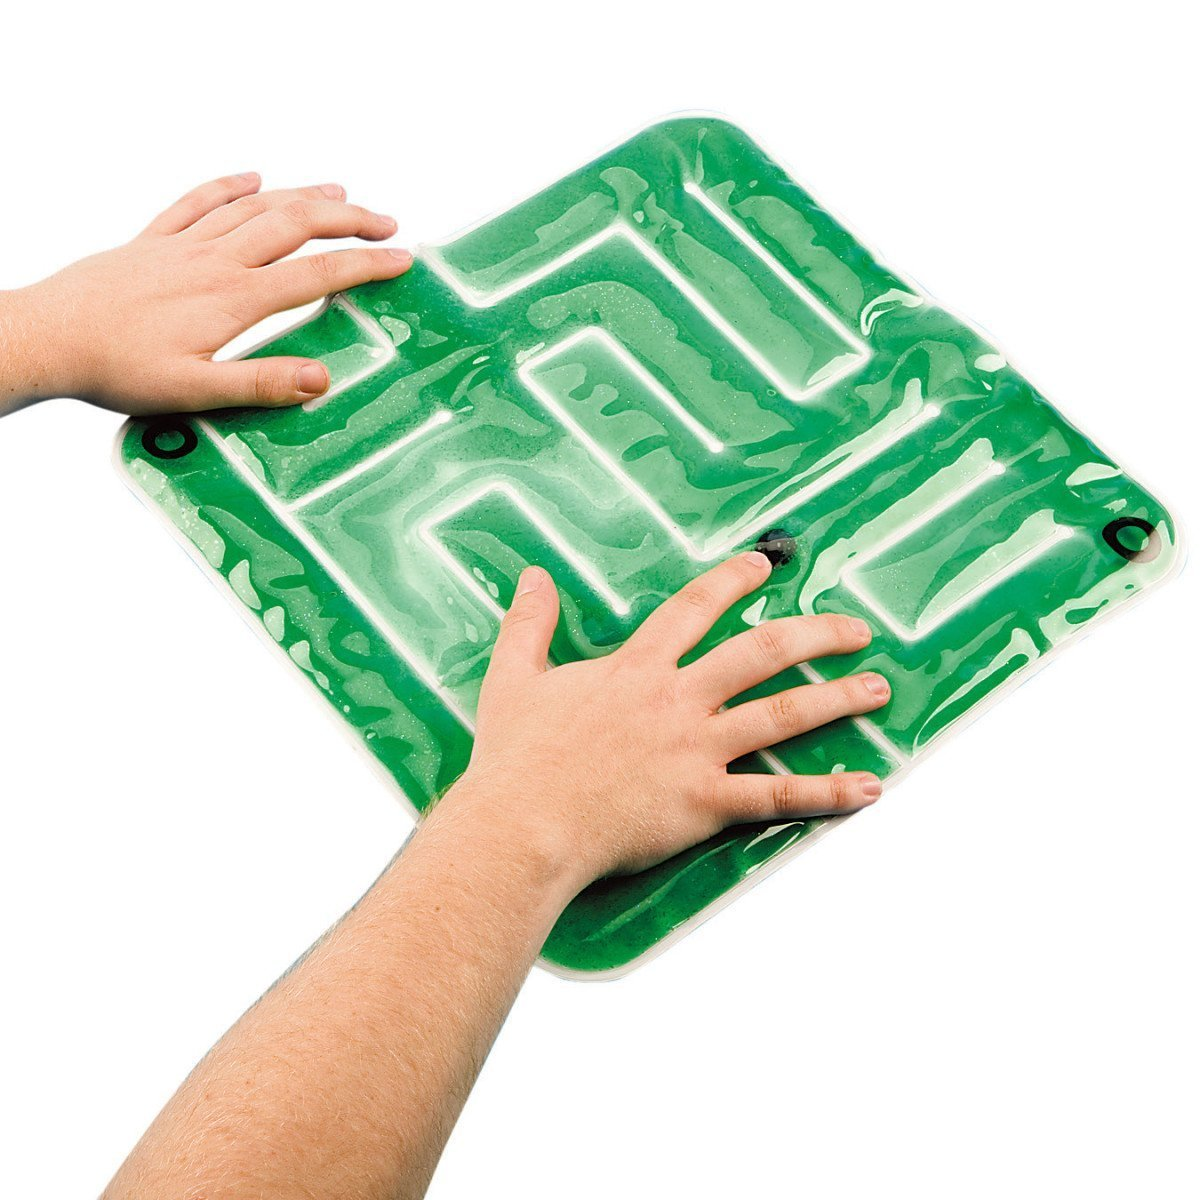 SENSORY COGNITIVE GEL MAZE WITH MARBLES by Skil-Care